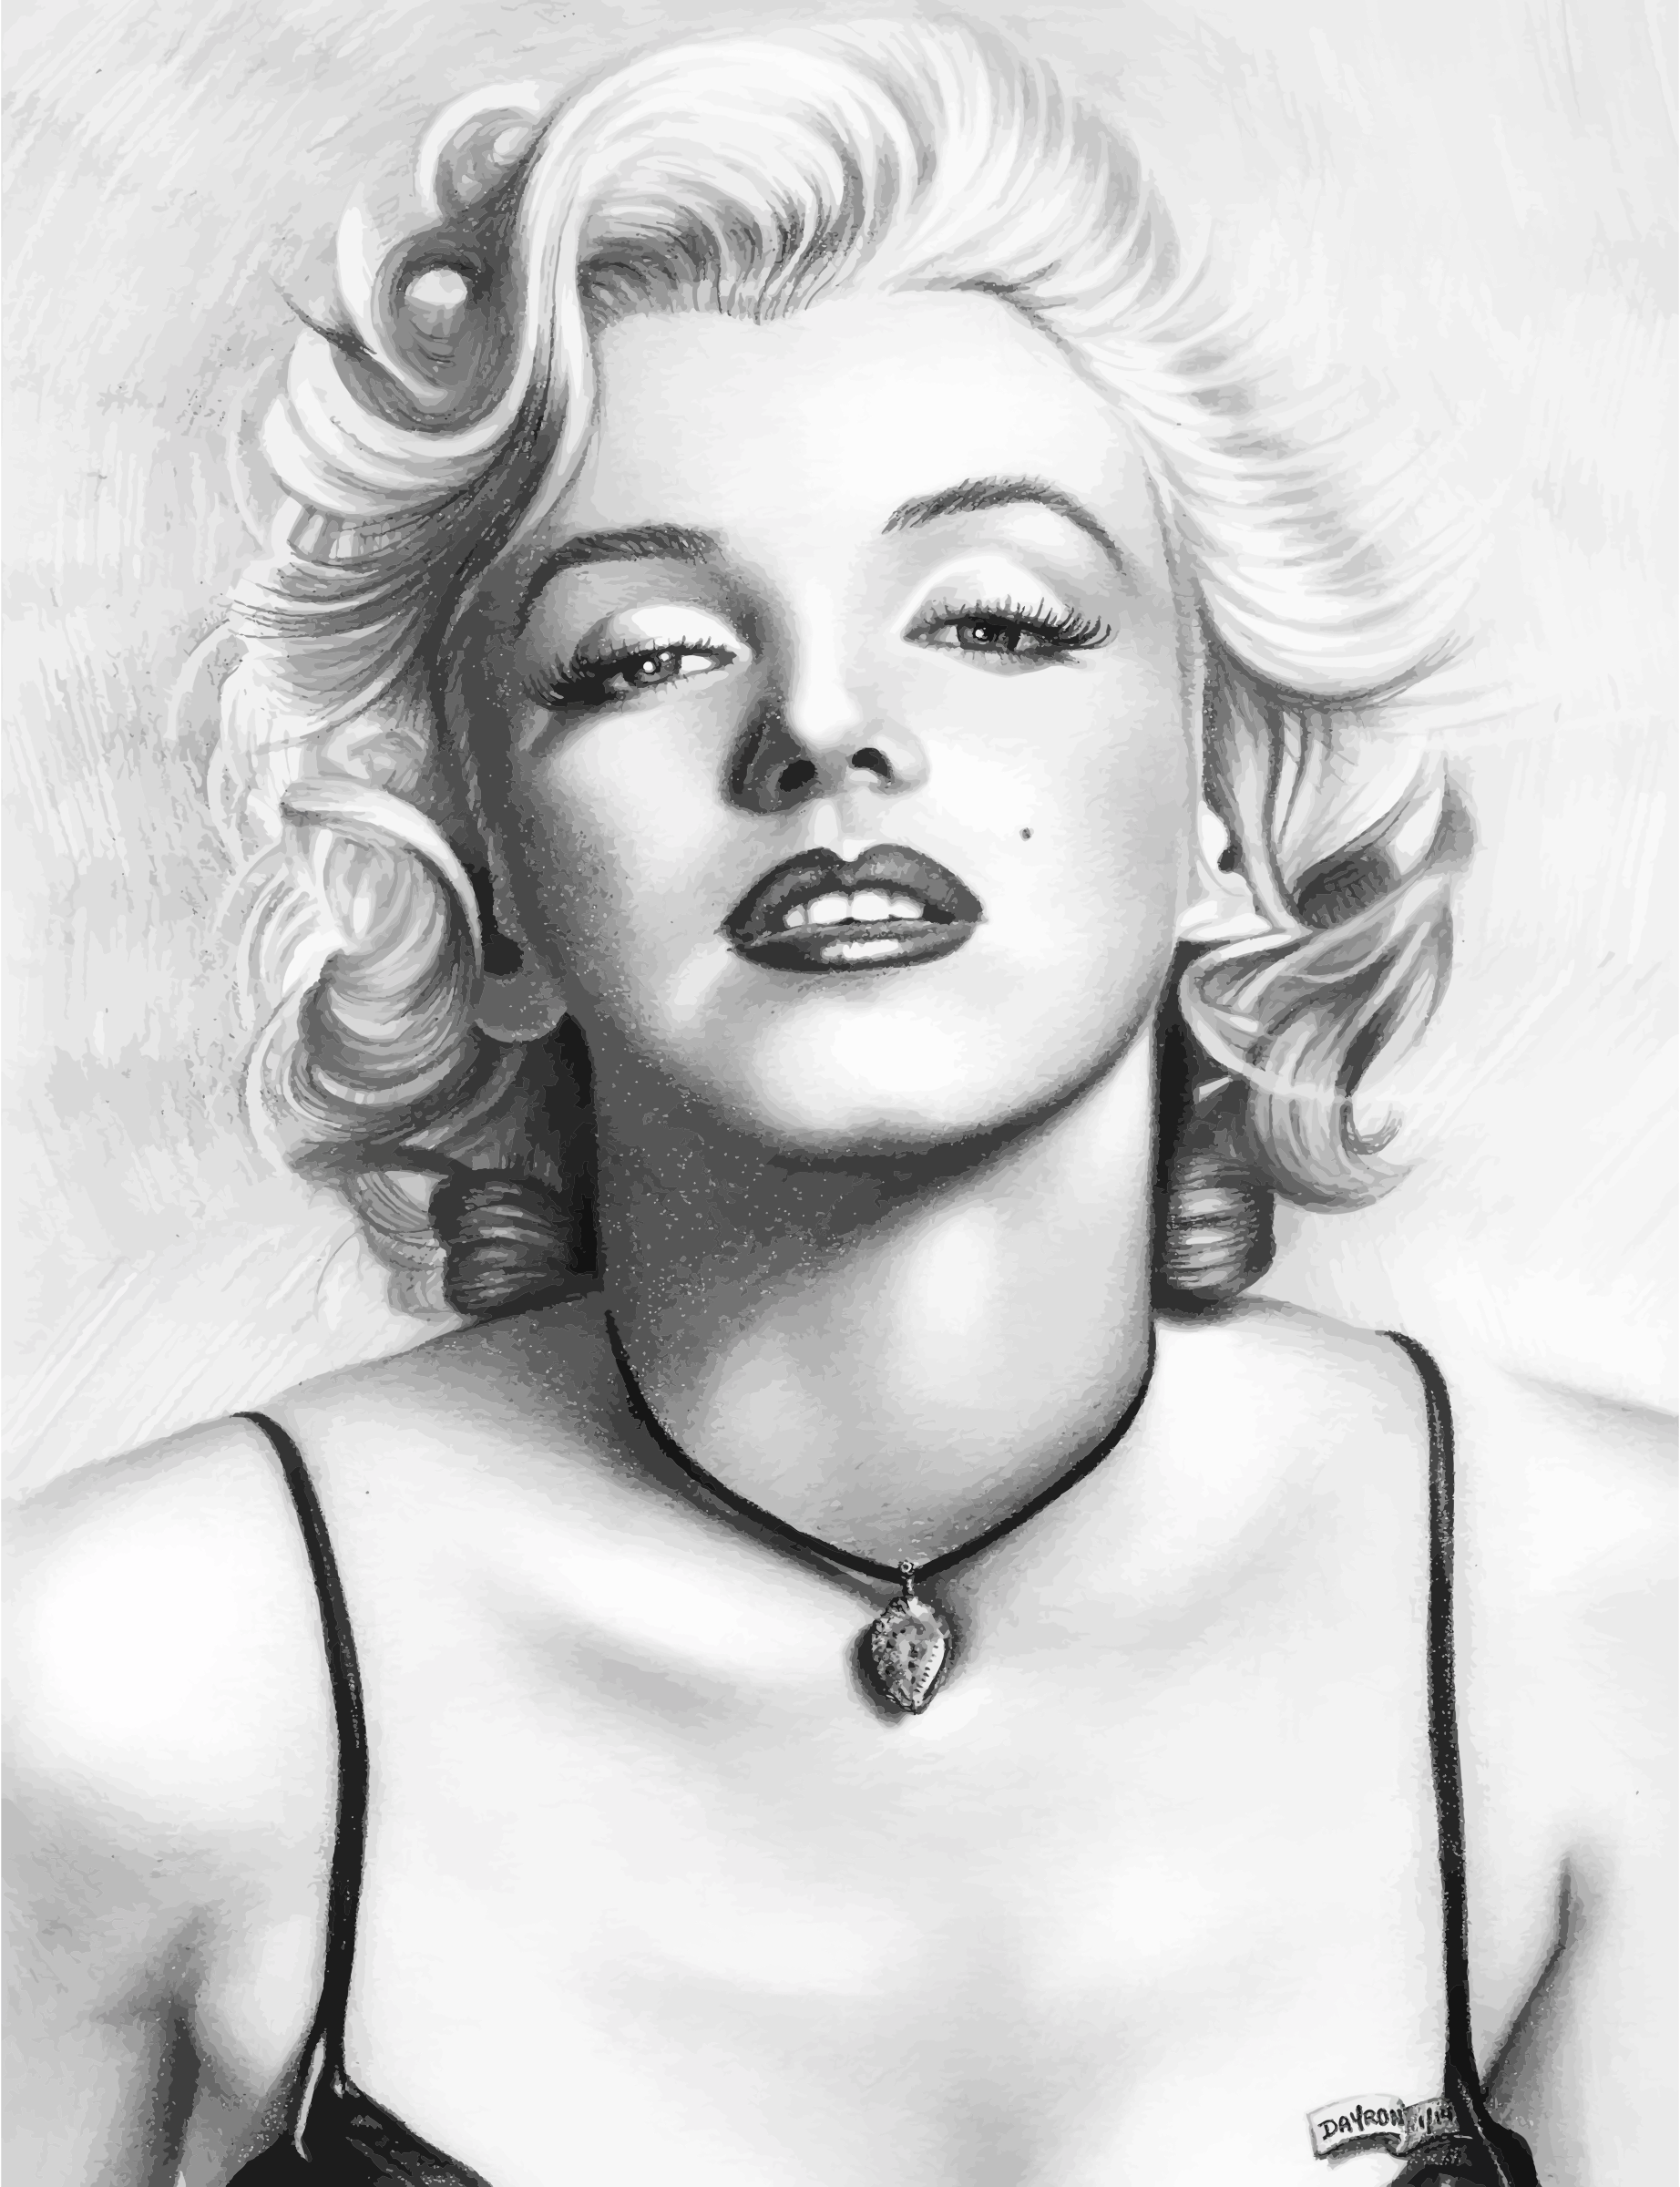 Pencils drawing god. Clipart marilyn monroe pencil